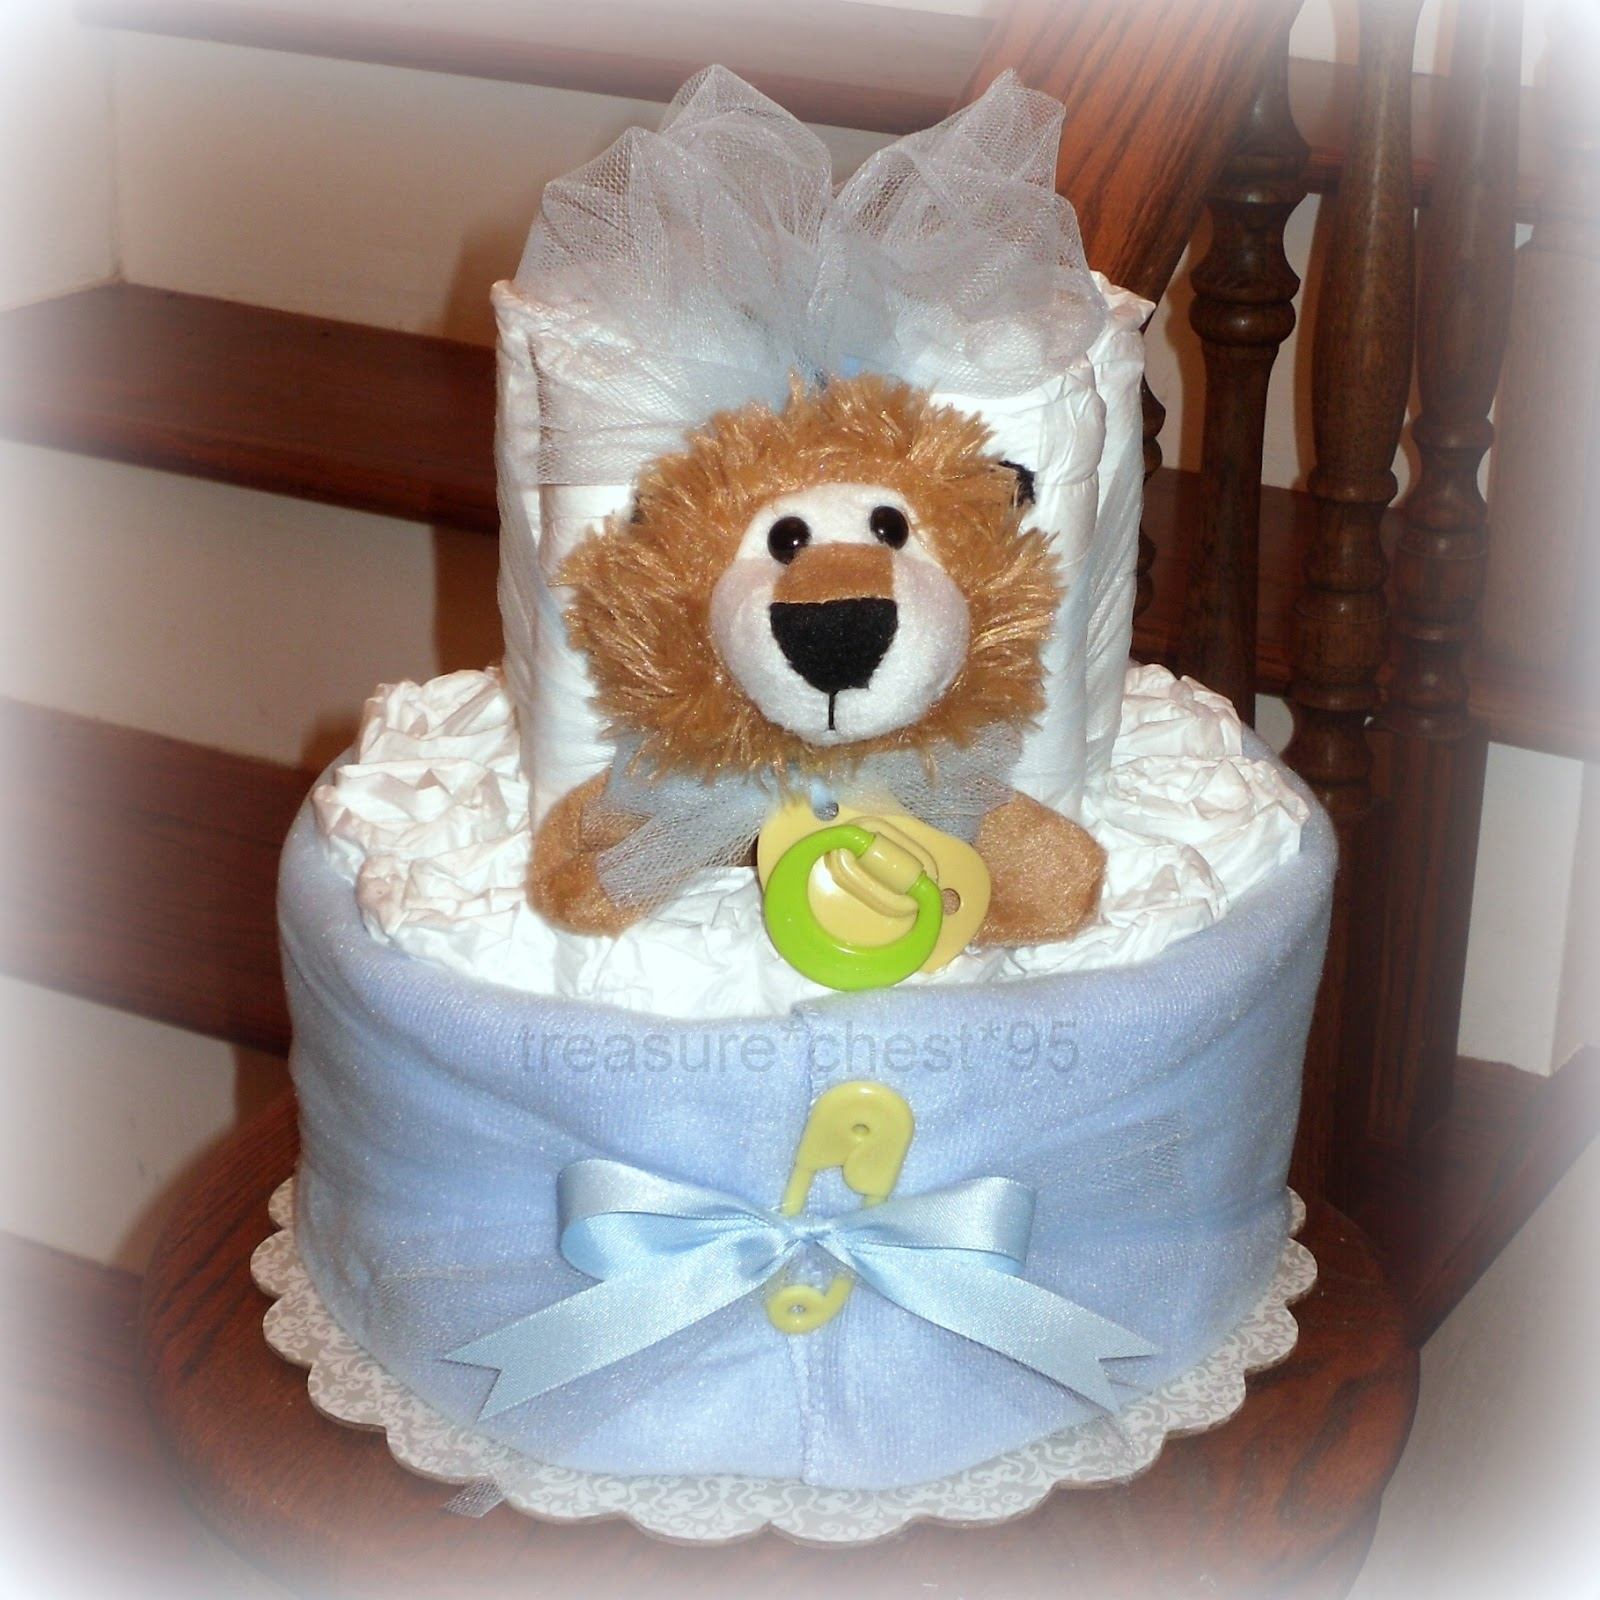 Baby Shower Decorated Cakes: LION Diaper Cake Baby Shower Centerpiece Decorations Table